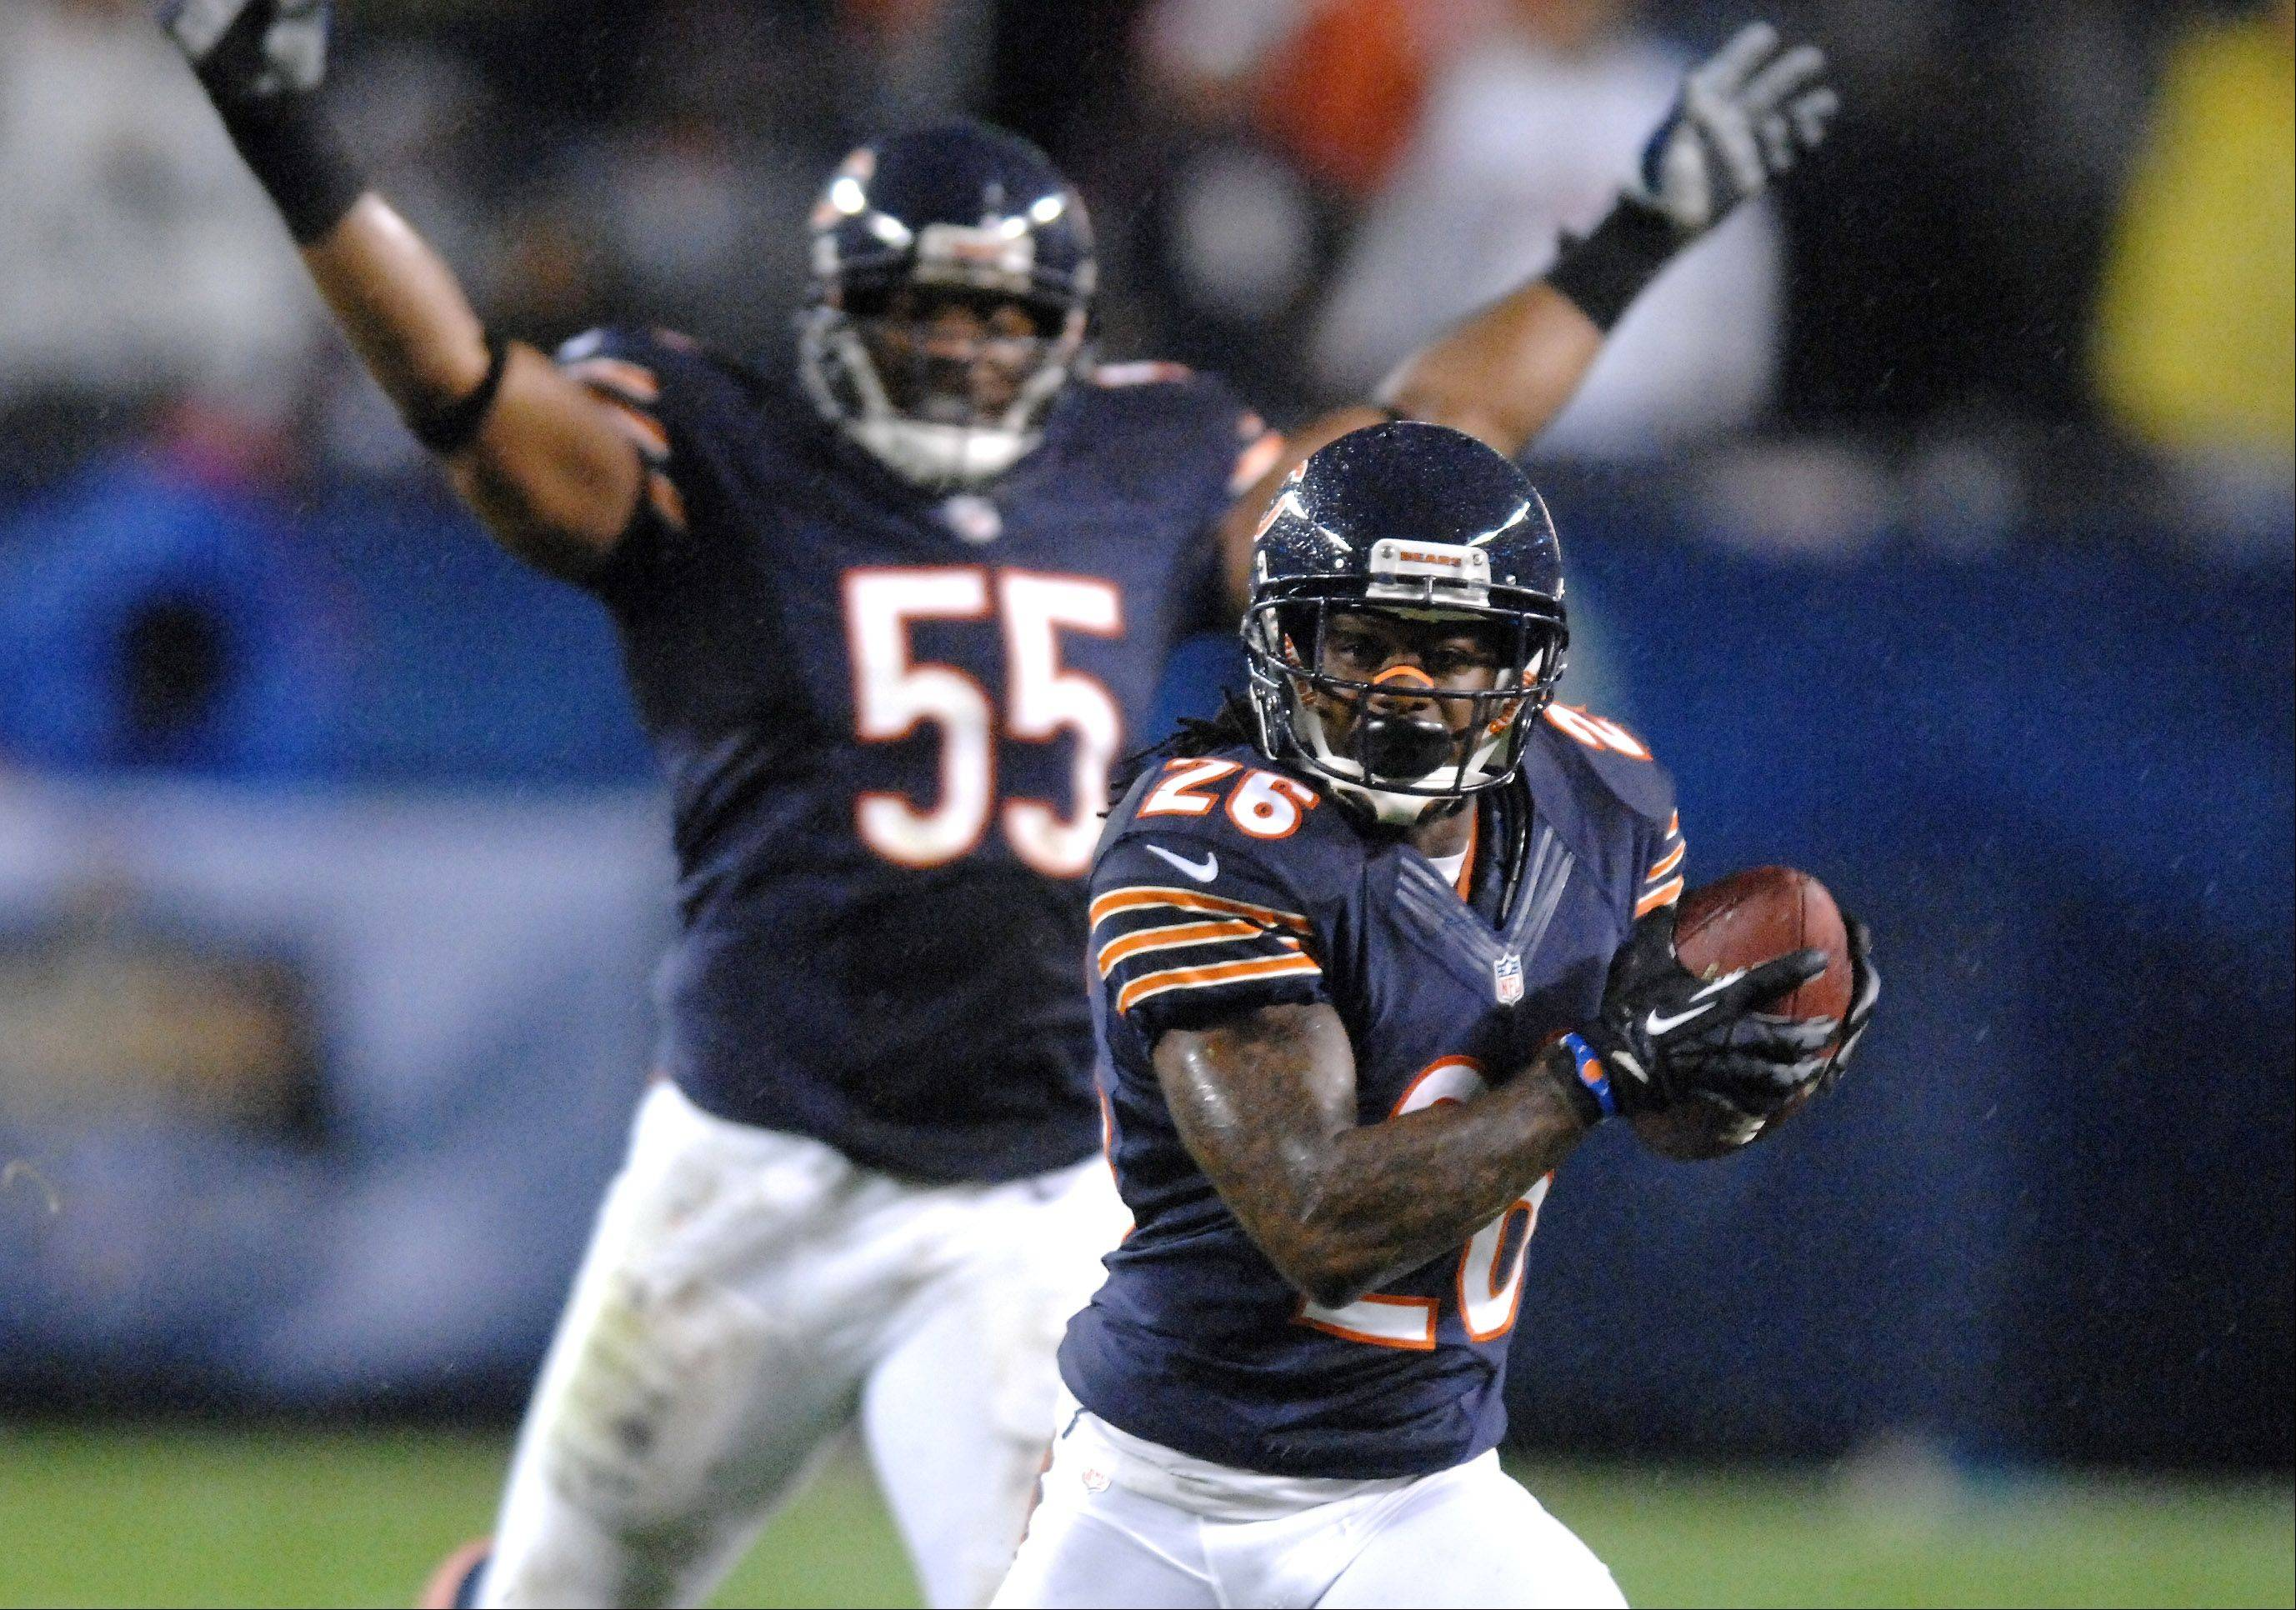 Chicago Bears outside linebacker Lance Briggs (55) celebrates in the background as Tim Jennings returns an interception.